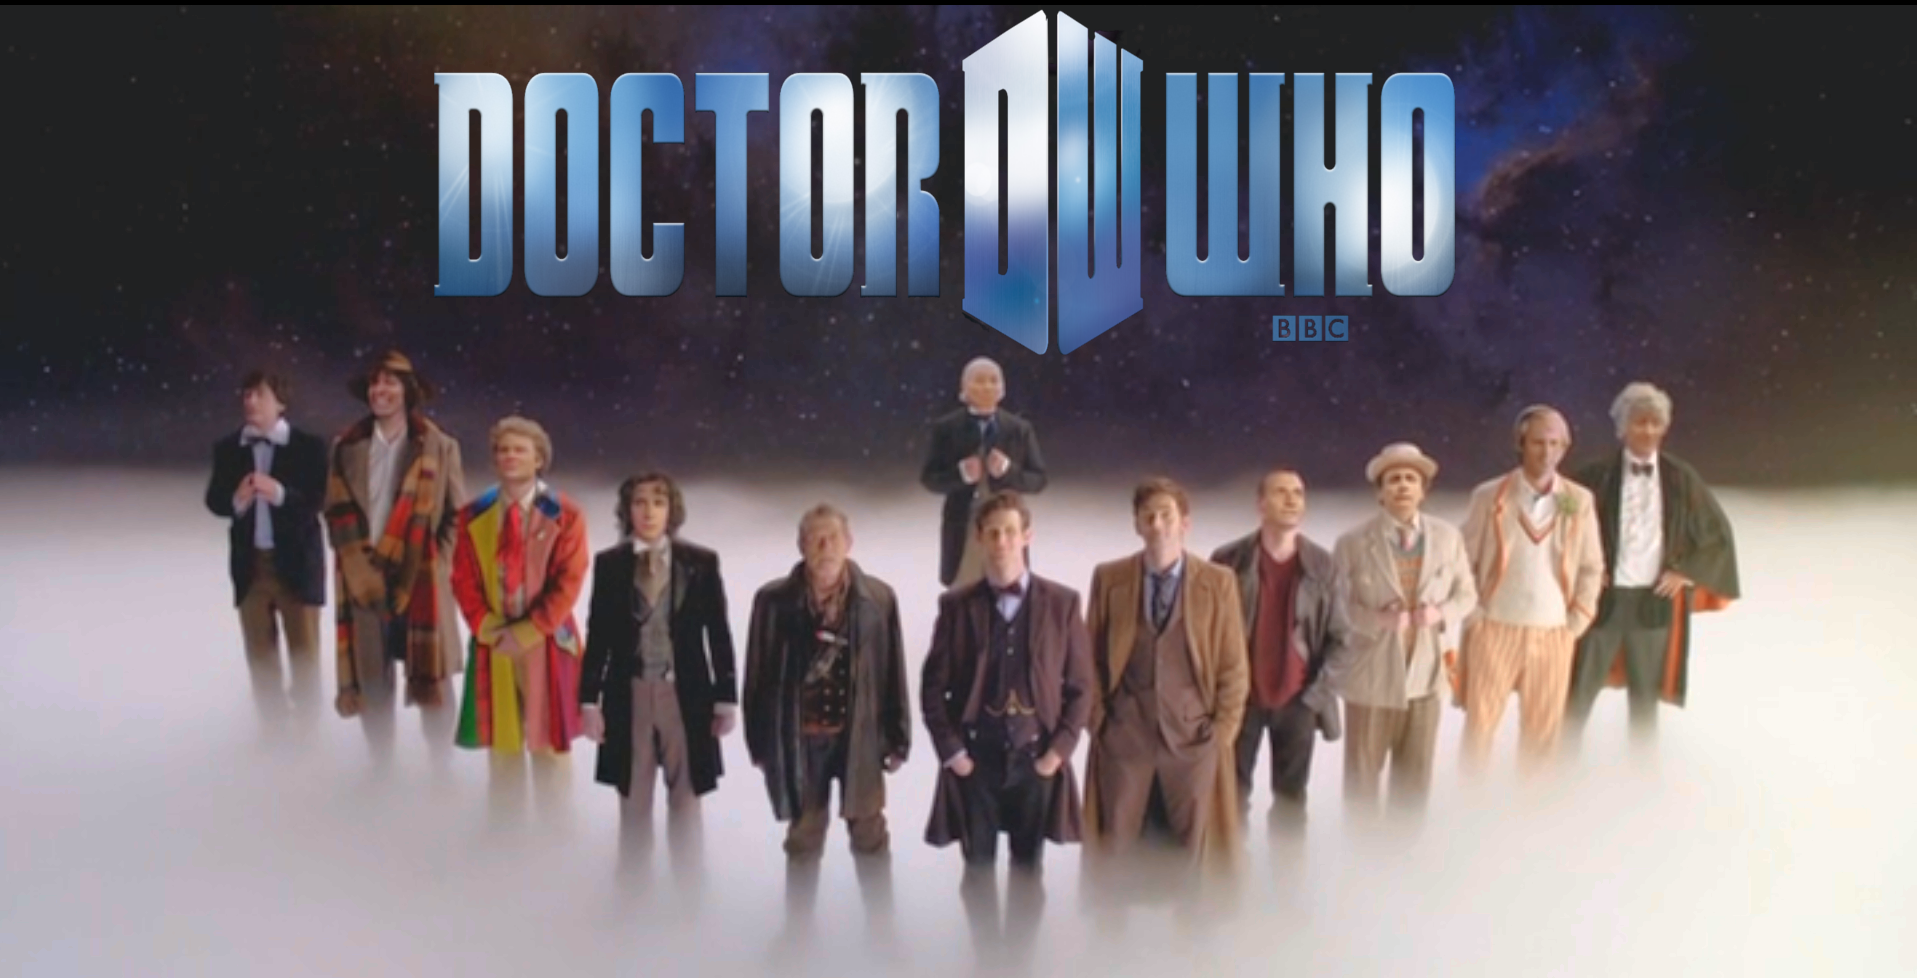 Doctor Who All Doctors Wallpaper Bohr and doctor who 1917x978